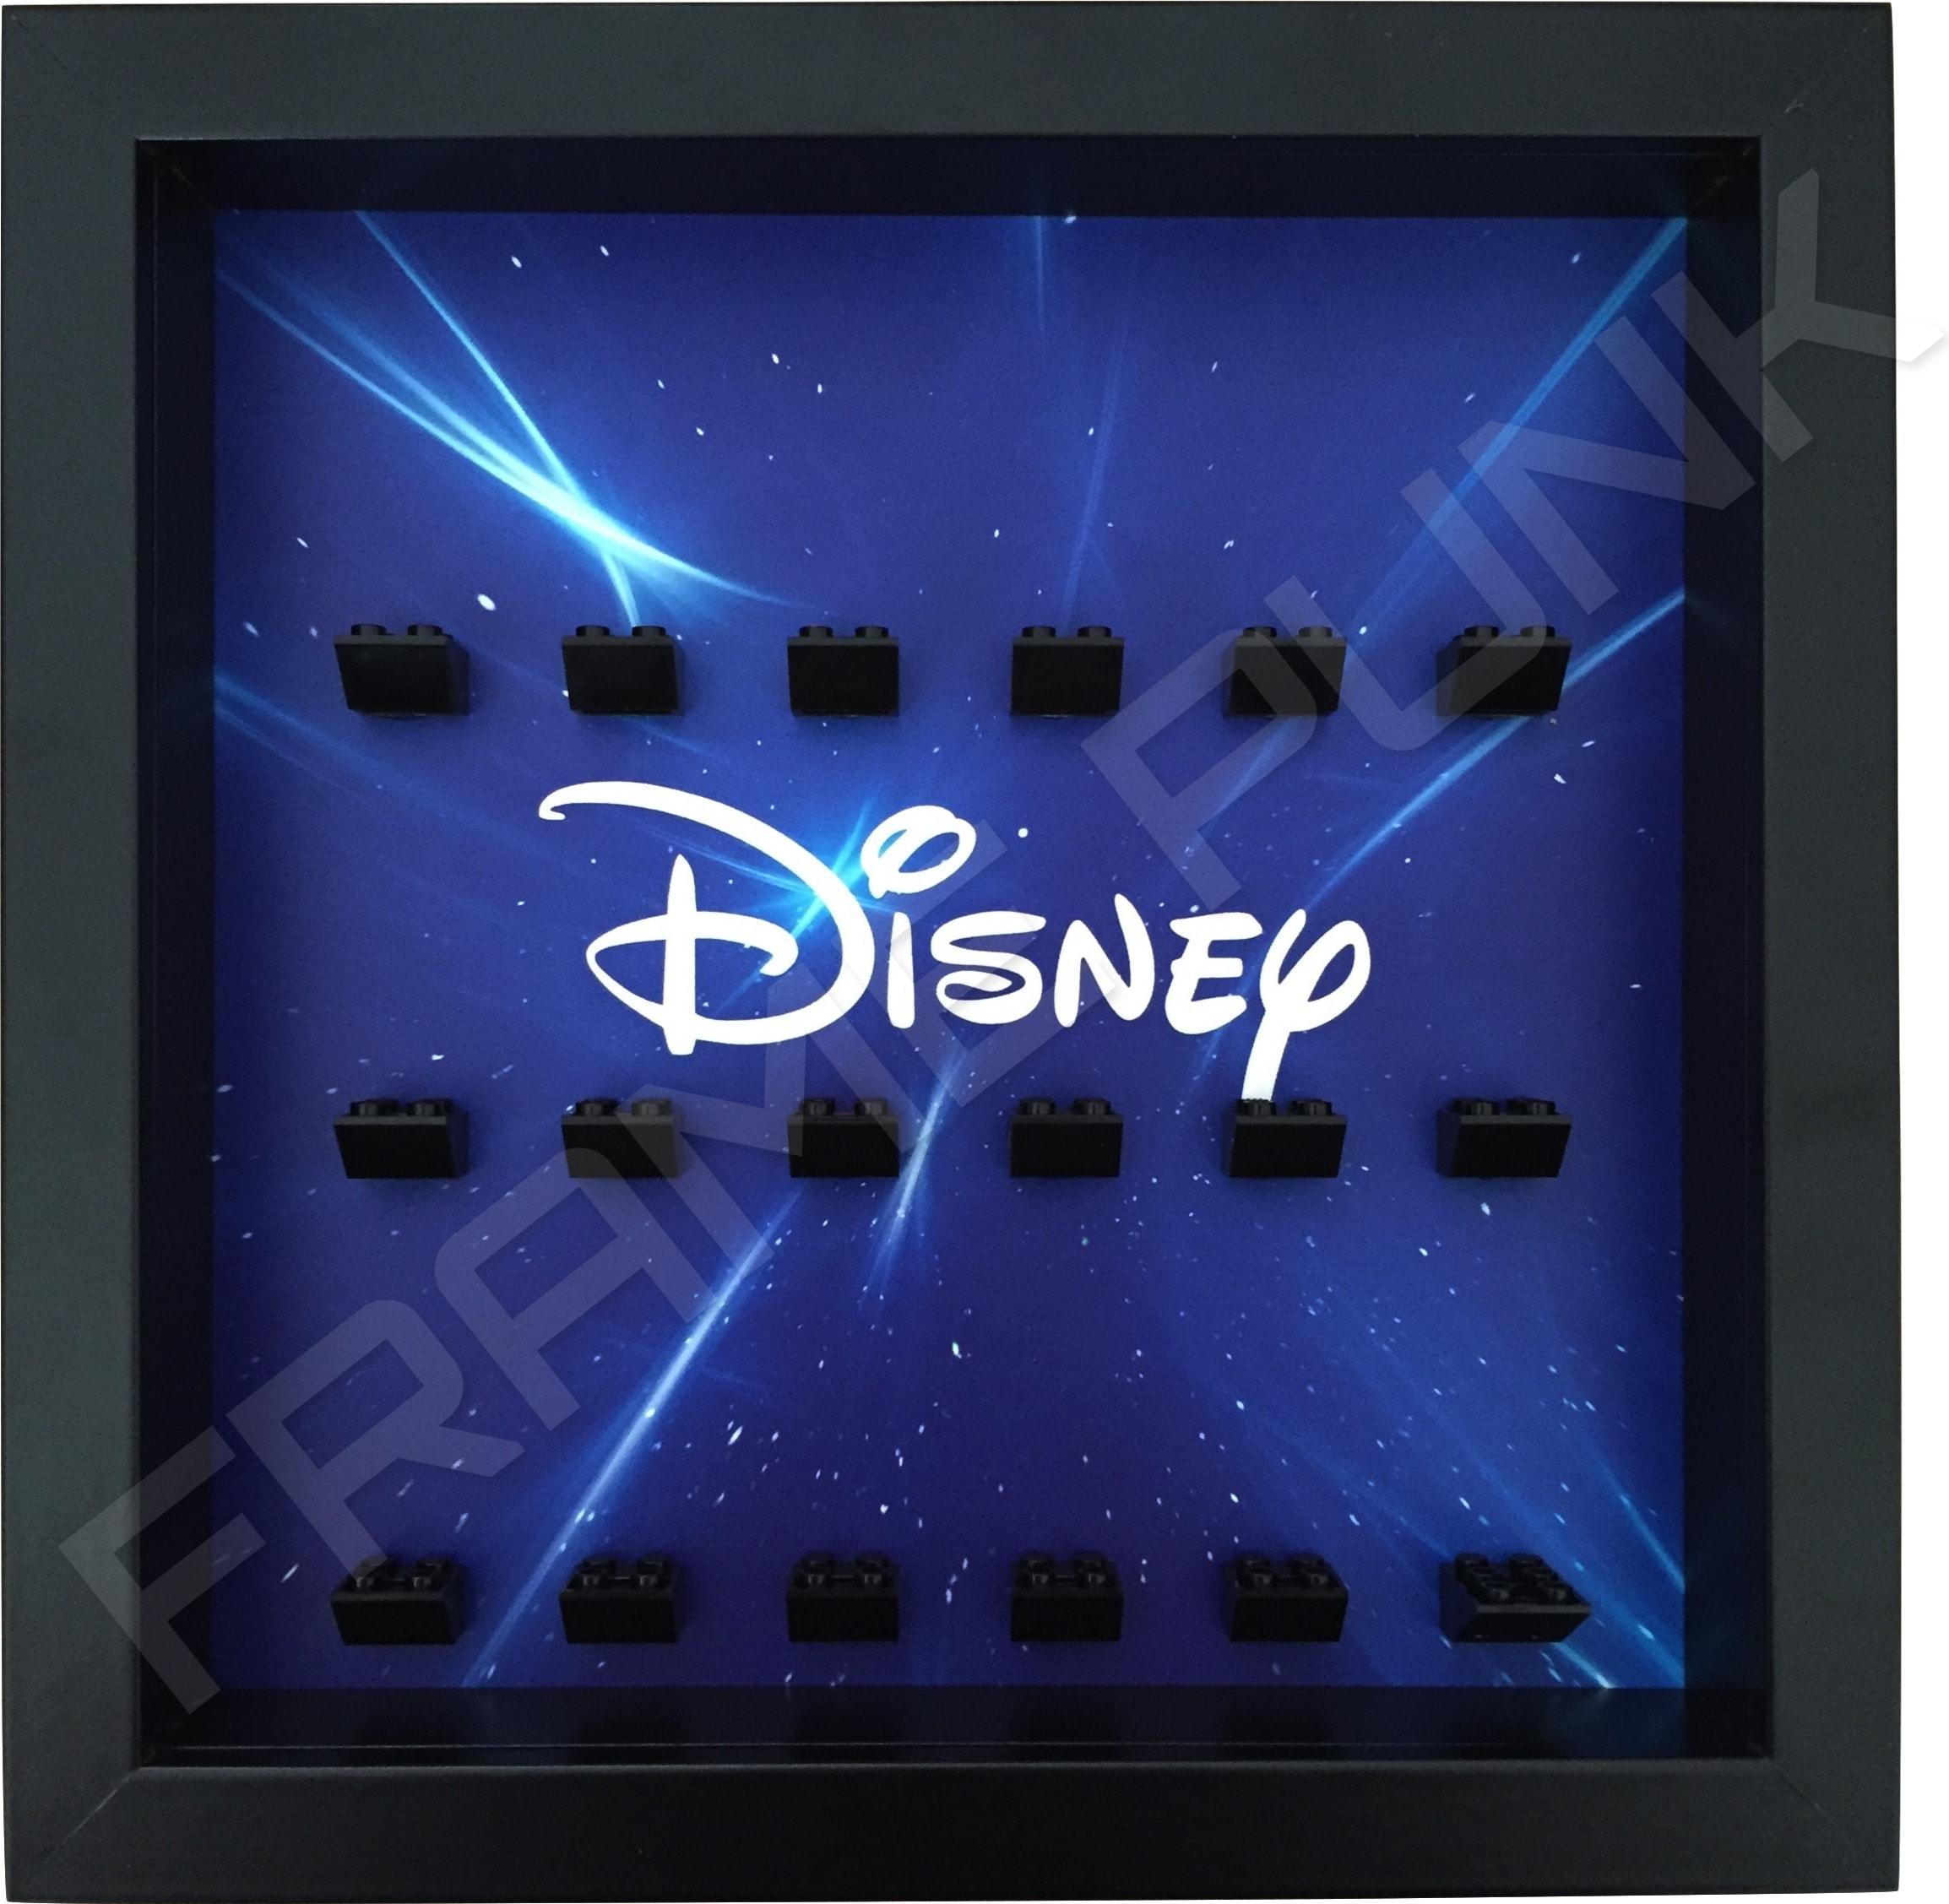 Disney Starry Black Frame Lego minifigures display